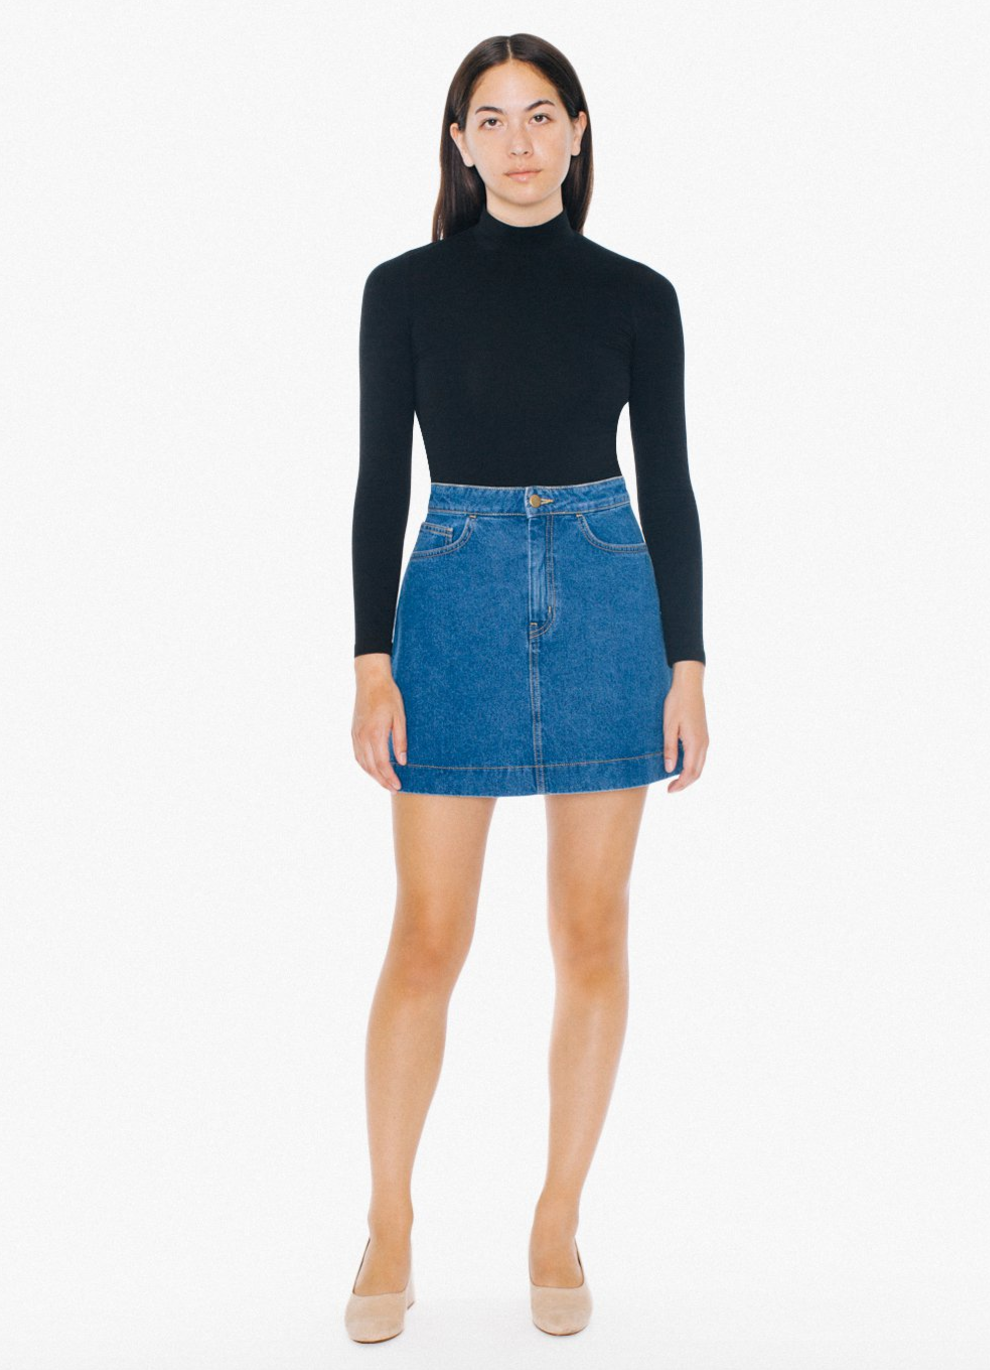 Easy Denim A Line Skirt $29 / I live in my denim skirt and if you need one this style looks very flattering and will last years